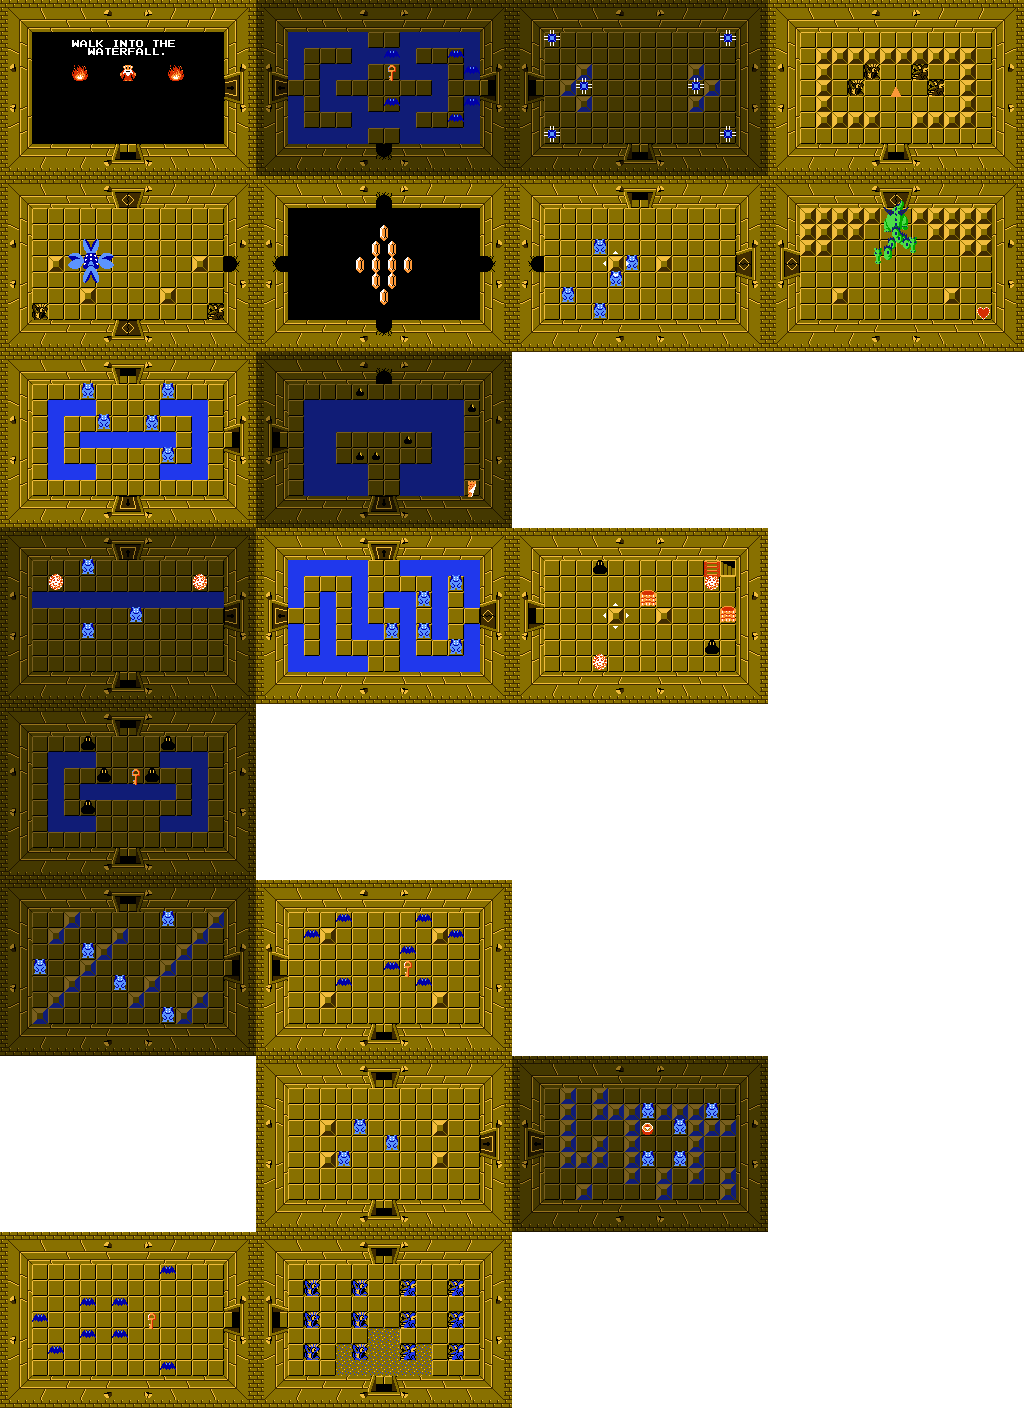 Legend Of Zelda Secret Map : legend, zelda, secret, Legend, Zelda, Secrets, Maping, Resources